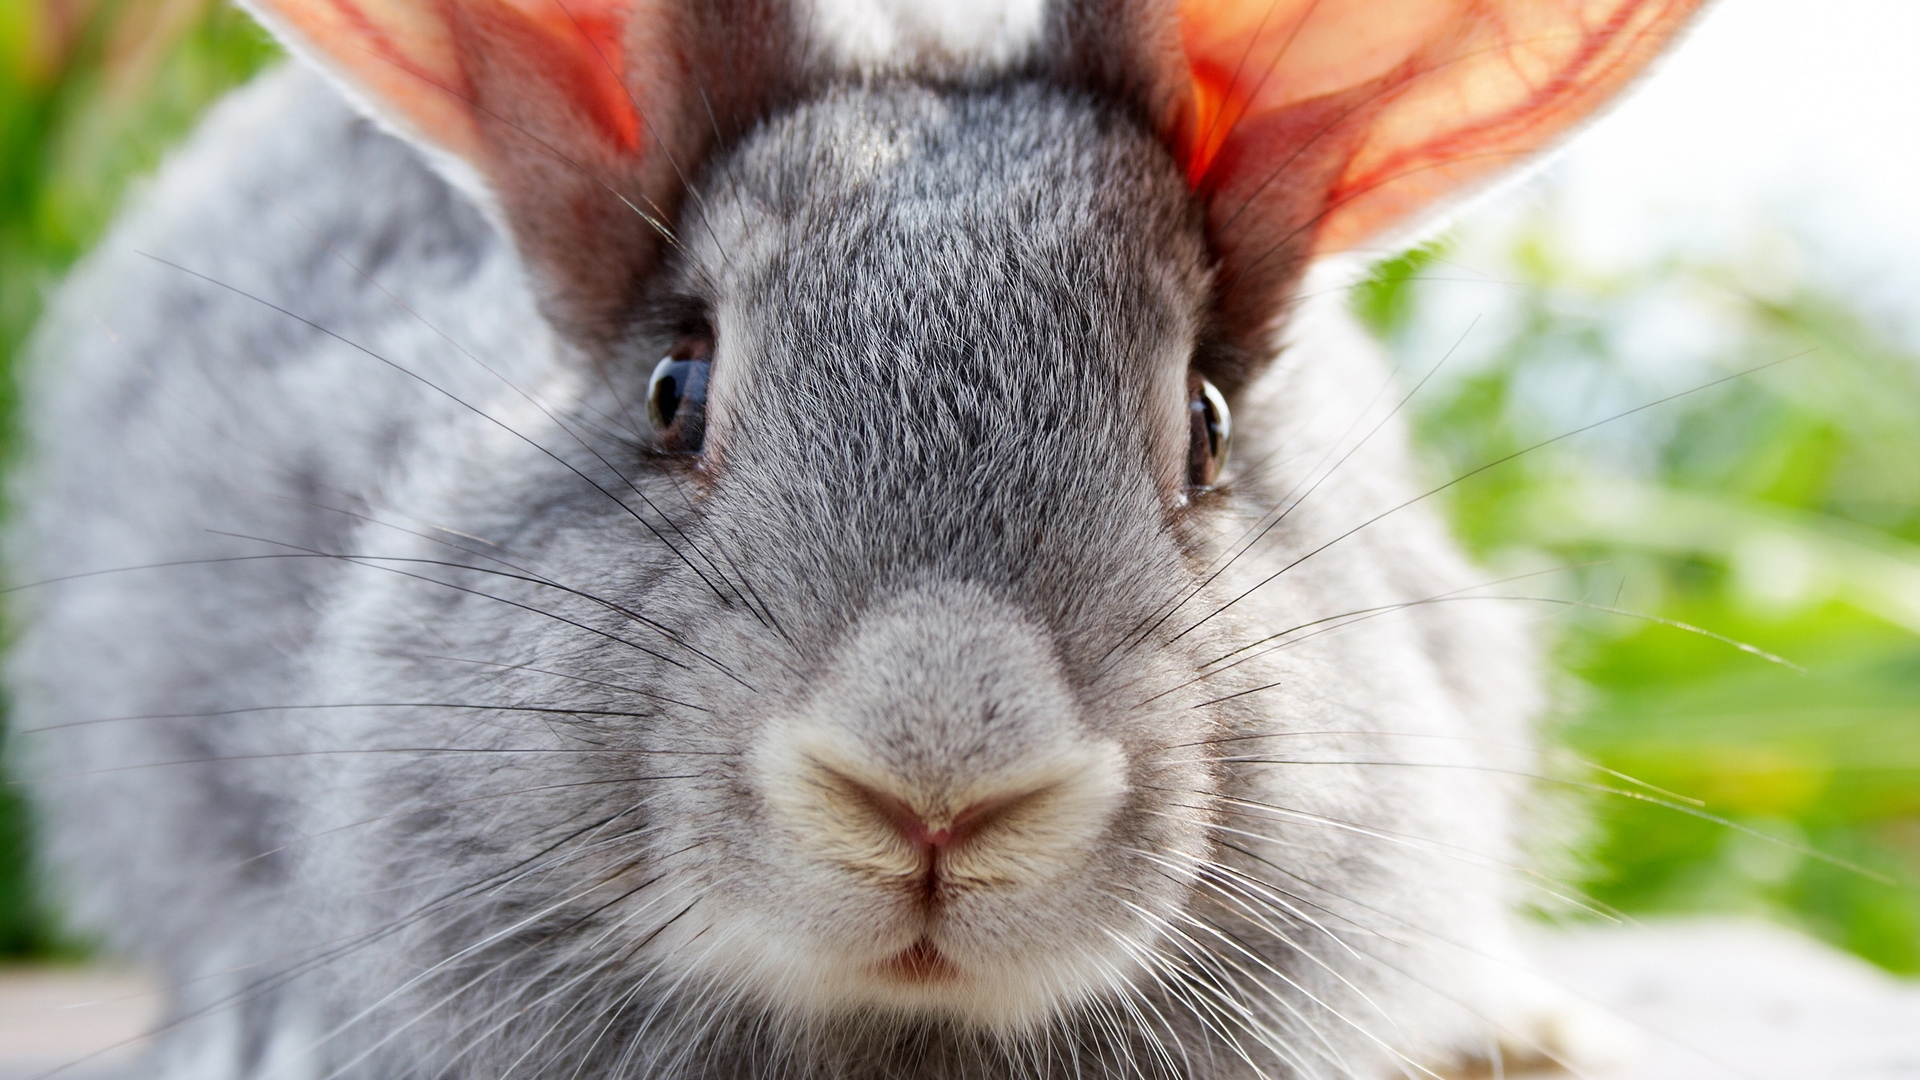 26174 download wallpaper Animals, Rabbits screensavers and pictures for free